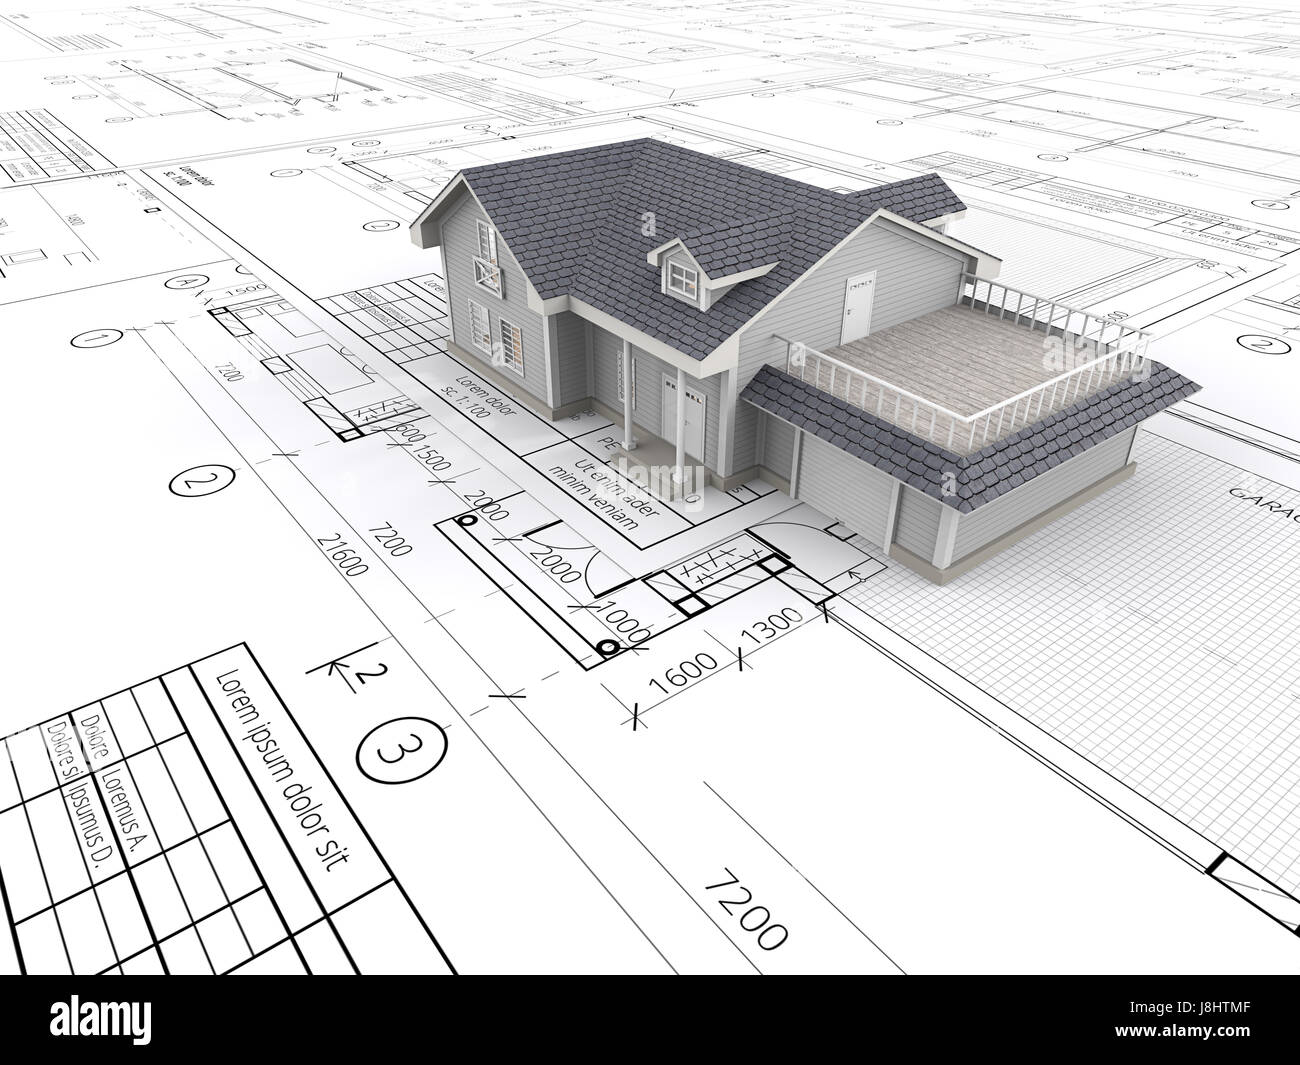 Top perspective View of a House ontop of large set of Blueprints. 3D render. Stock Photo